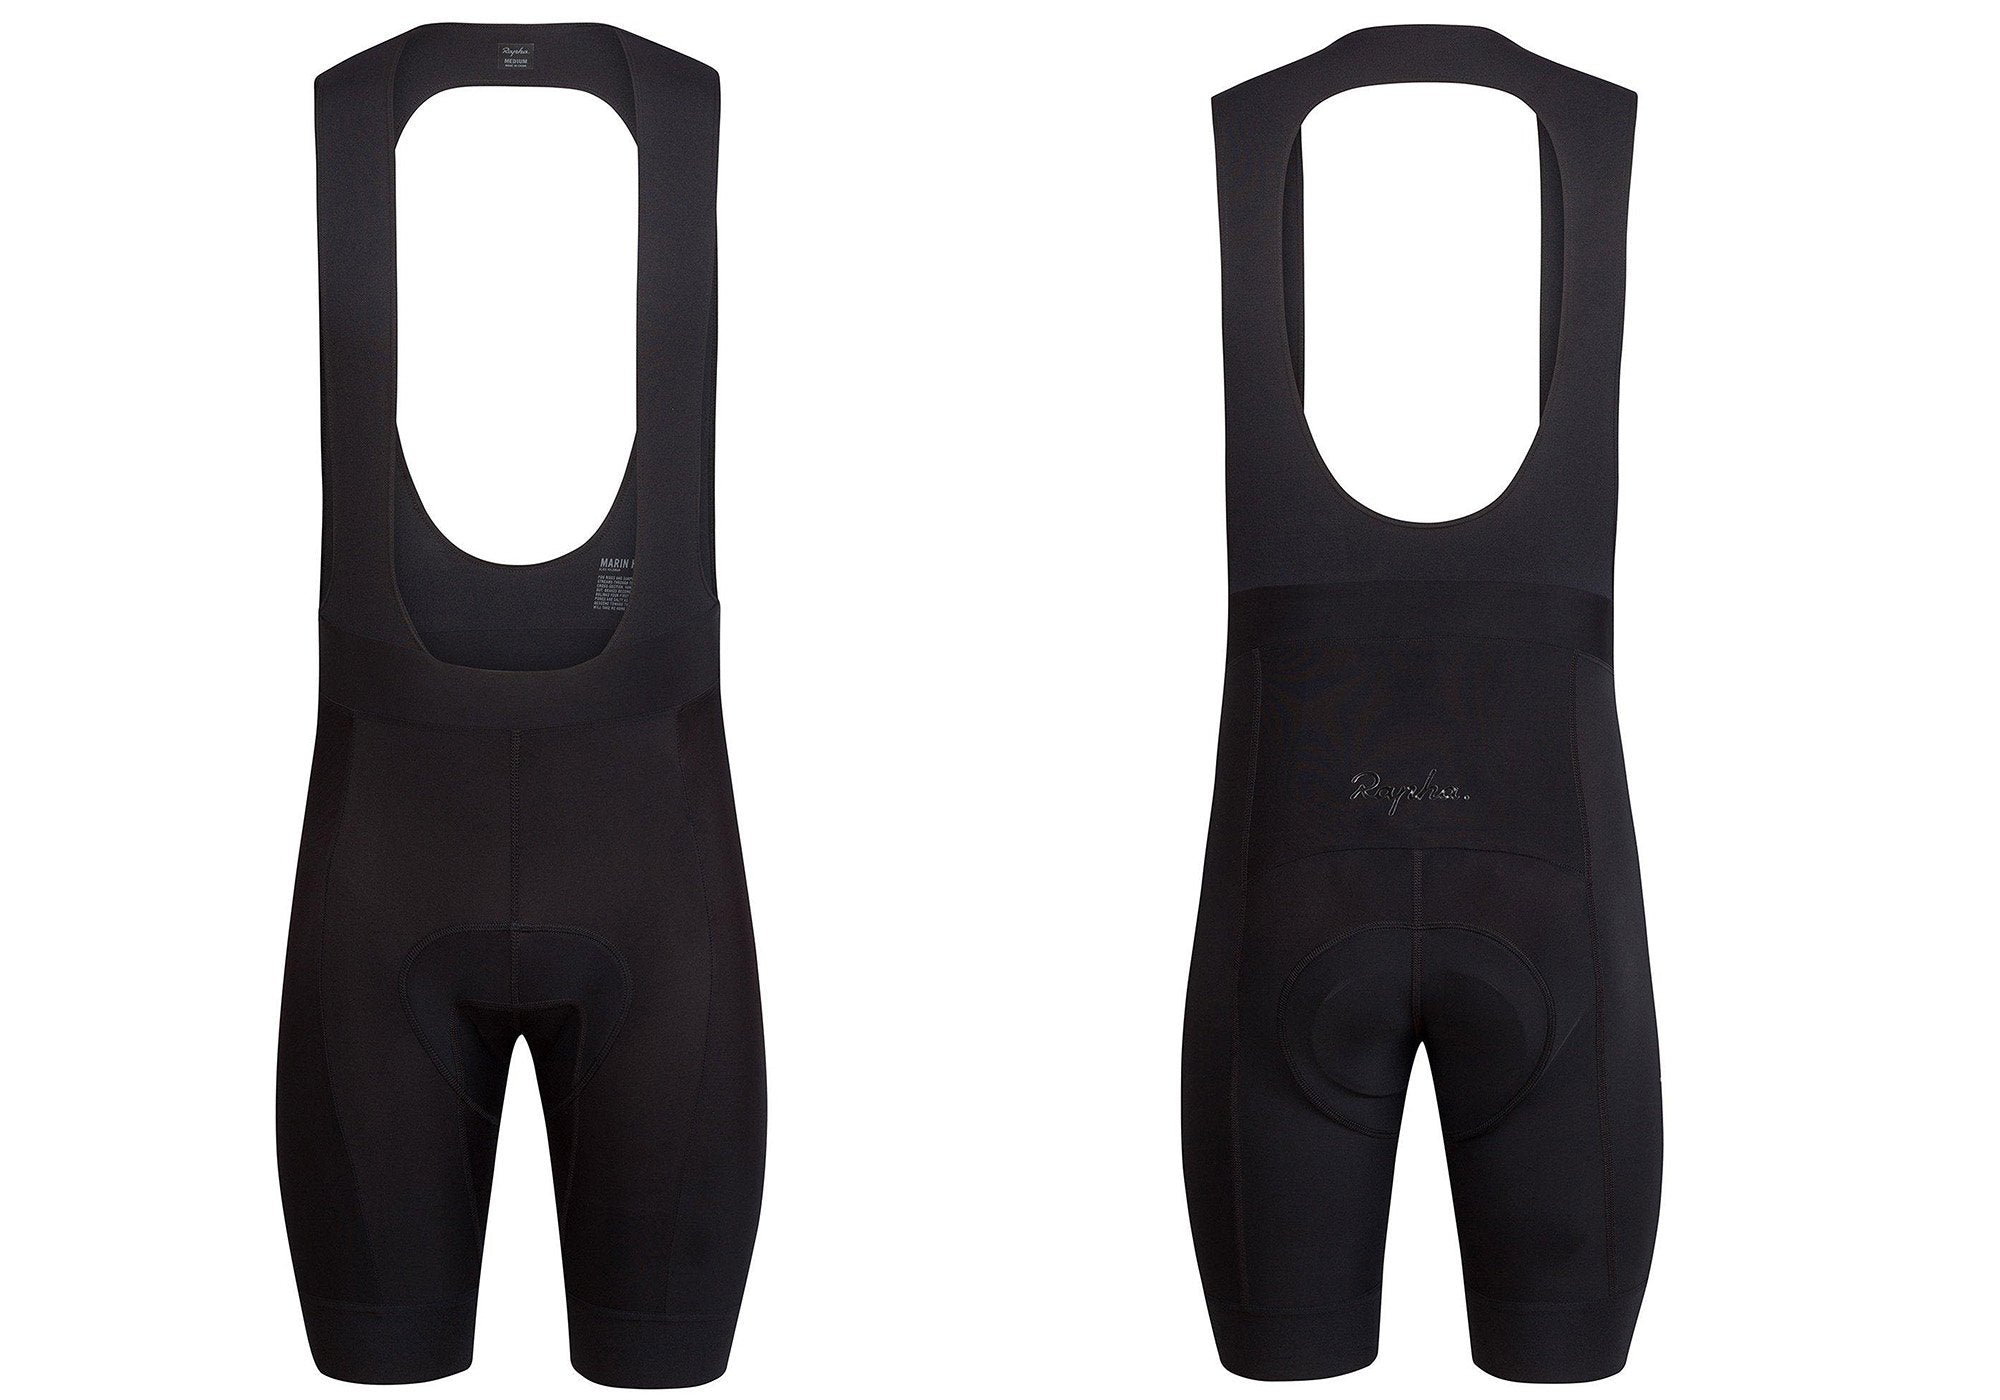 Rapha Mens Core Bib Short 2021, Black, buy online at Woolys Wheels Sydney with free delivery